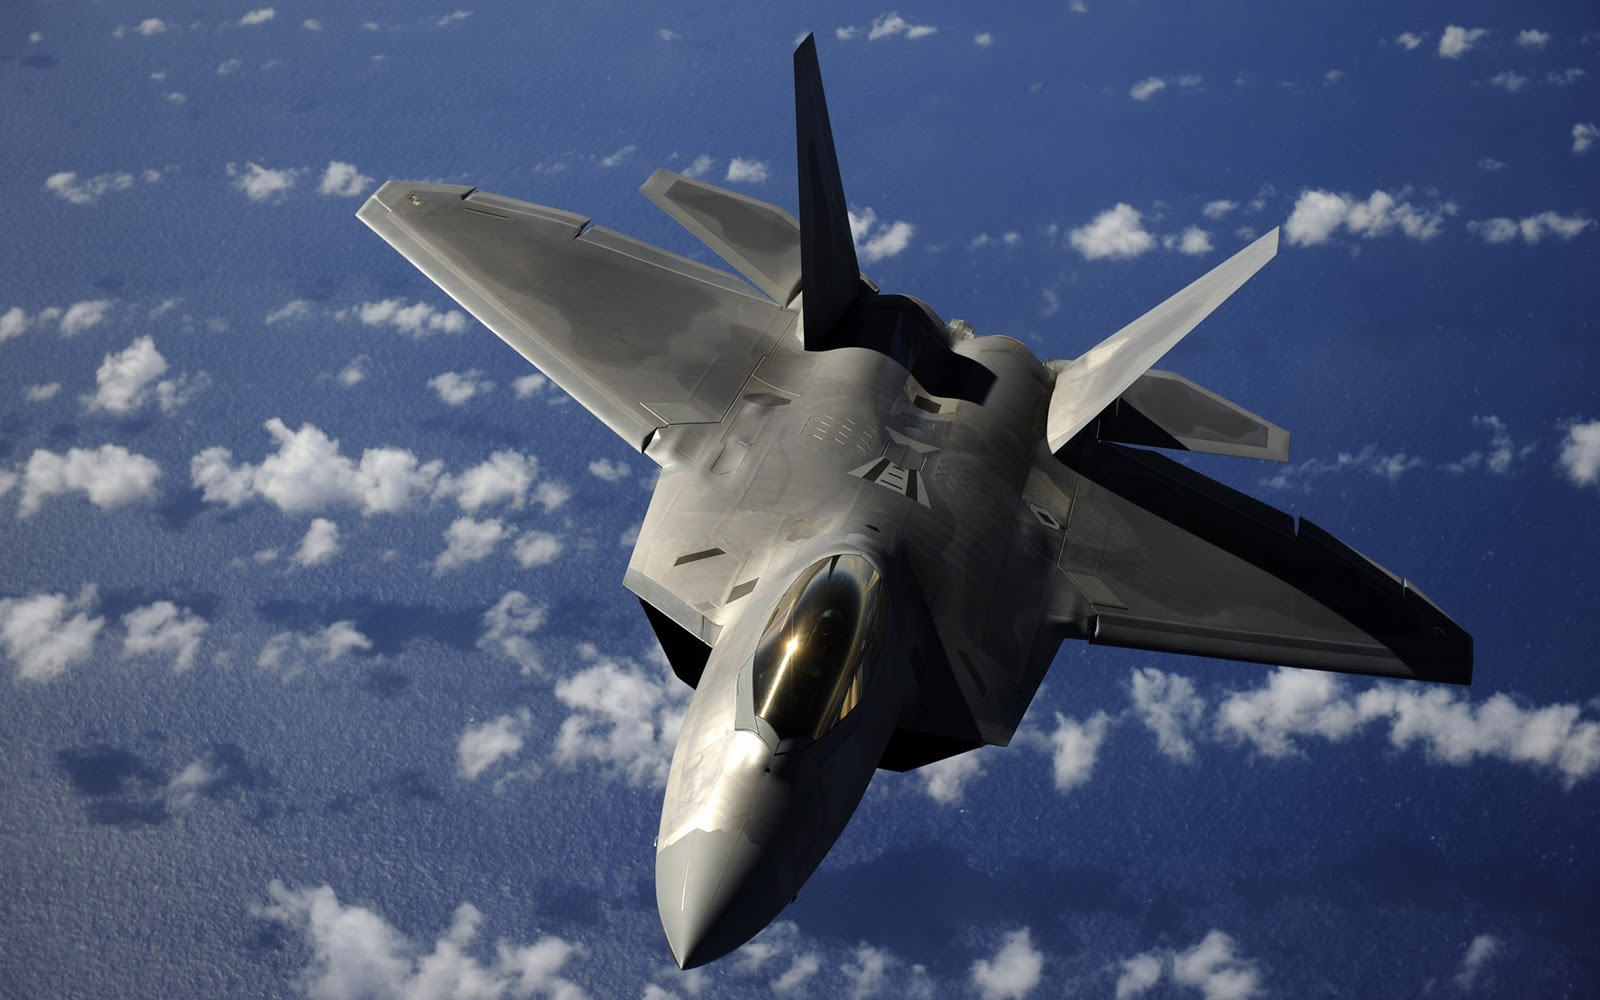 22 Raptor 11308 Hd Wallpapers in Aircraft   Imagescicom 1600x1000